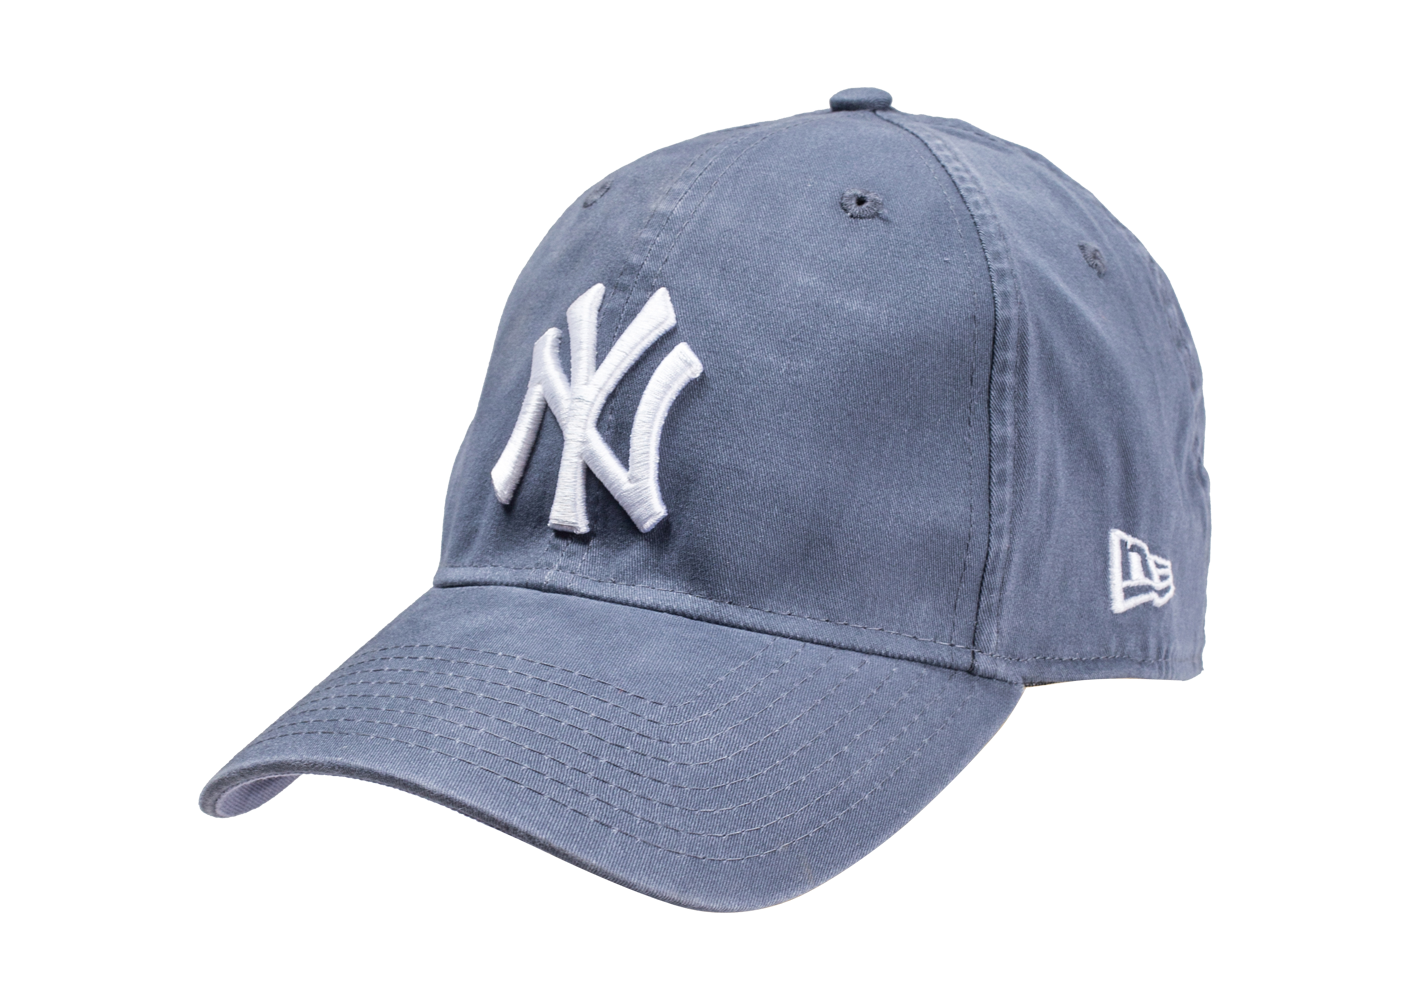 New Era Homme Casquette Washed Bleue